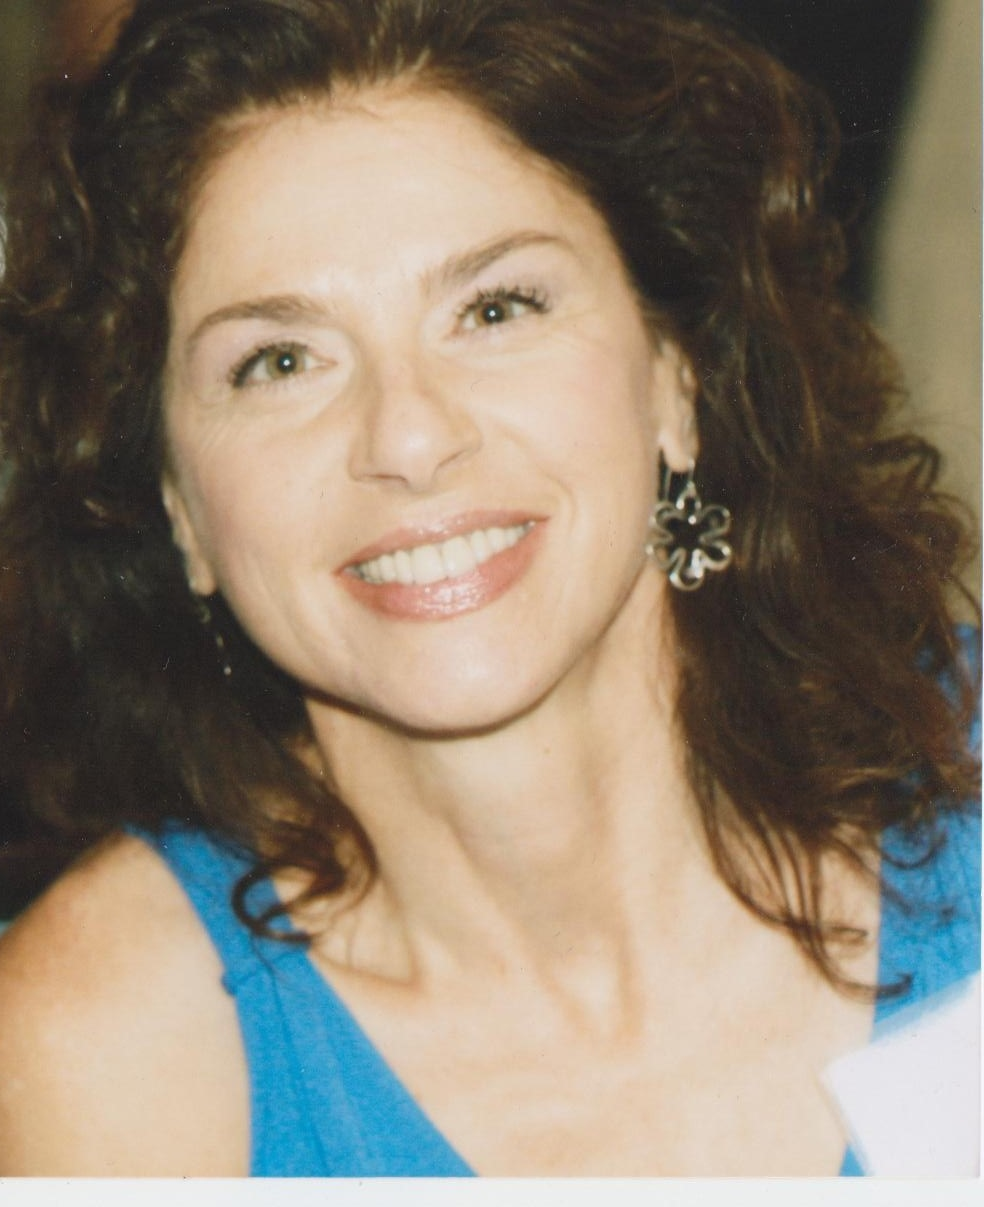 meet angela singles Whether you are seeking just a date, a pen pal, a casual or a serious relationship , you can meet singles in wayne today new jersey is known as the garden.